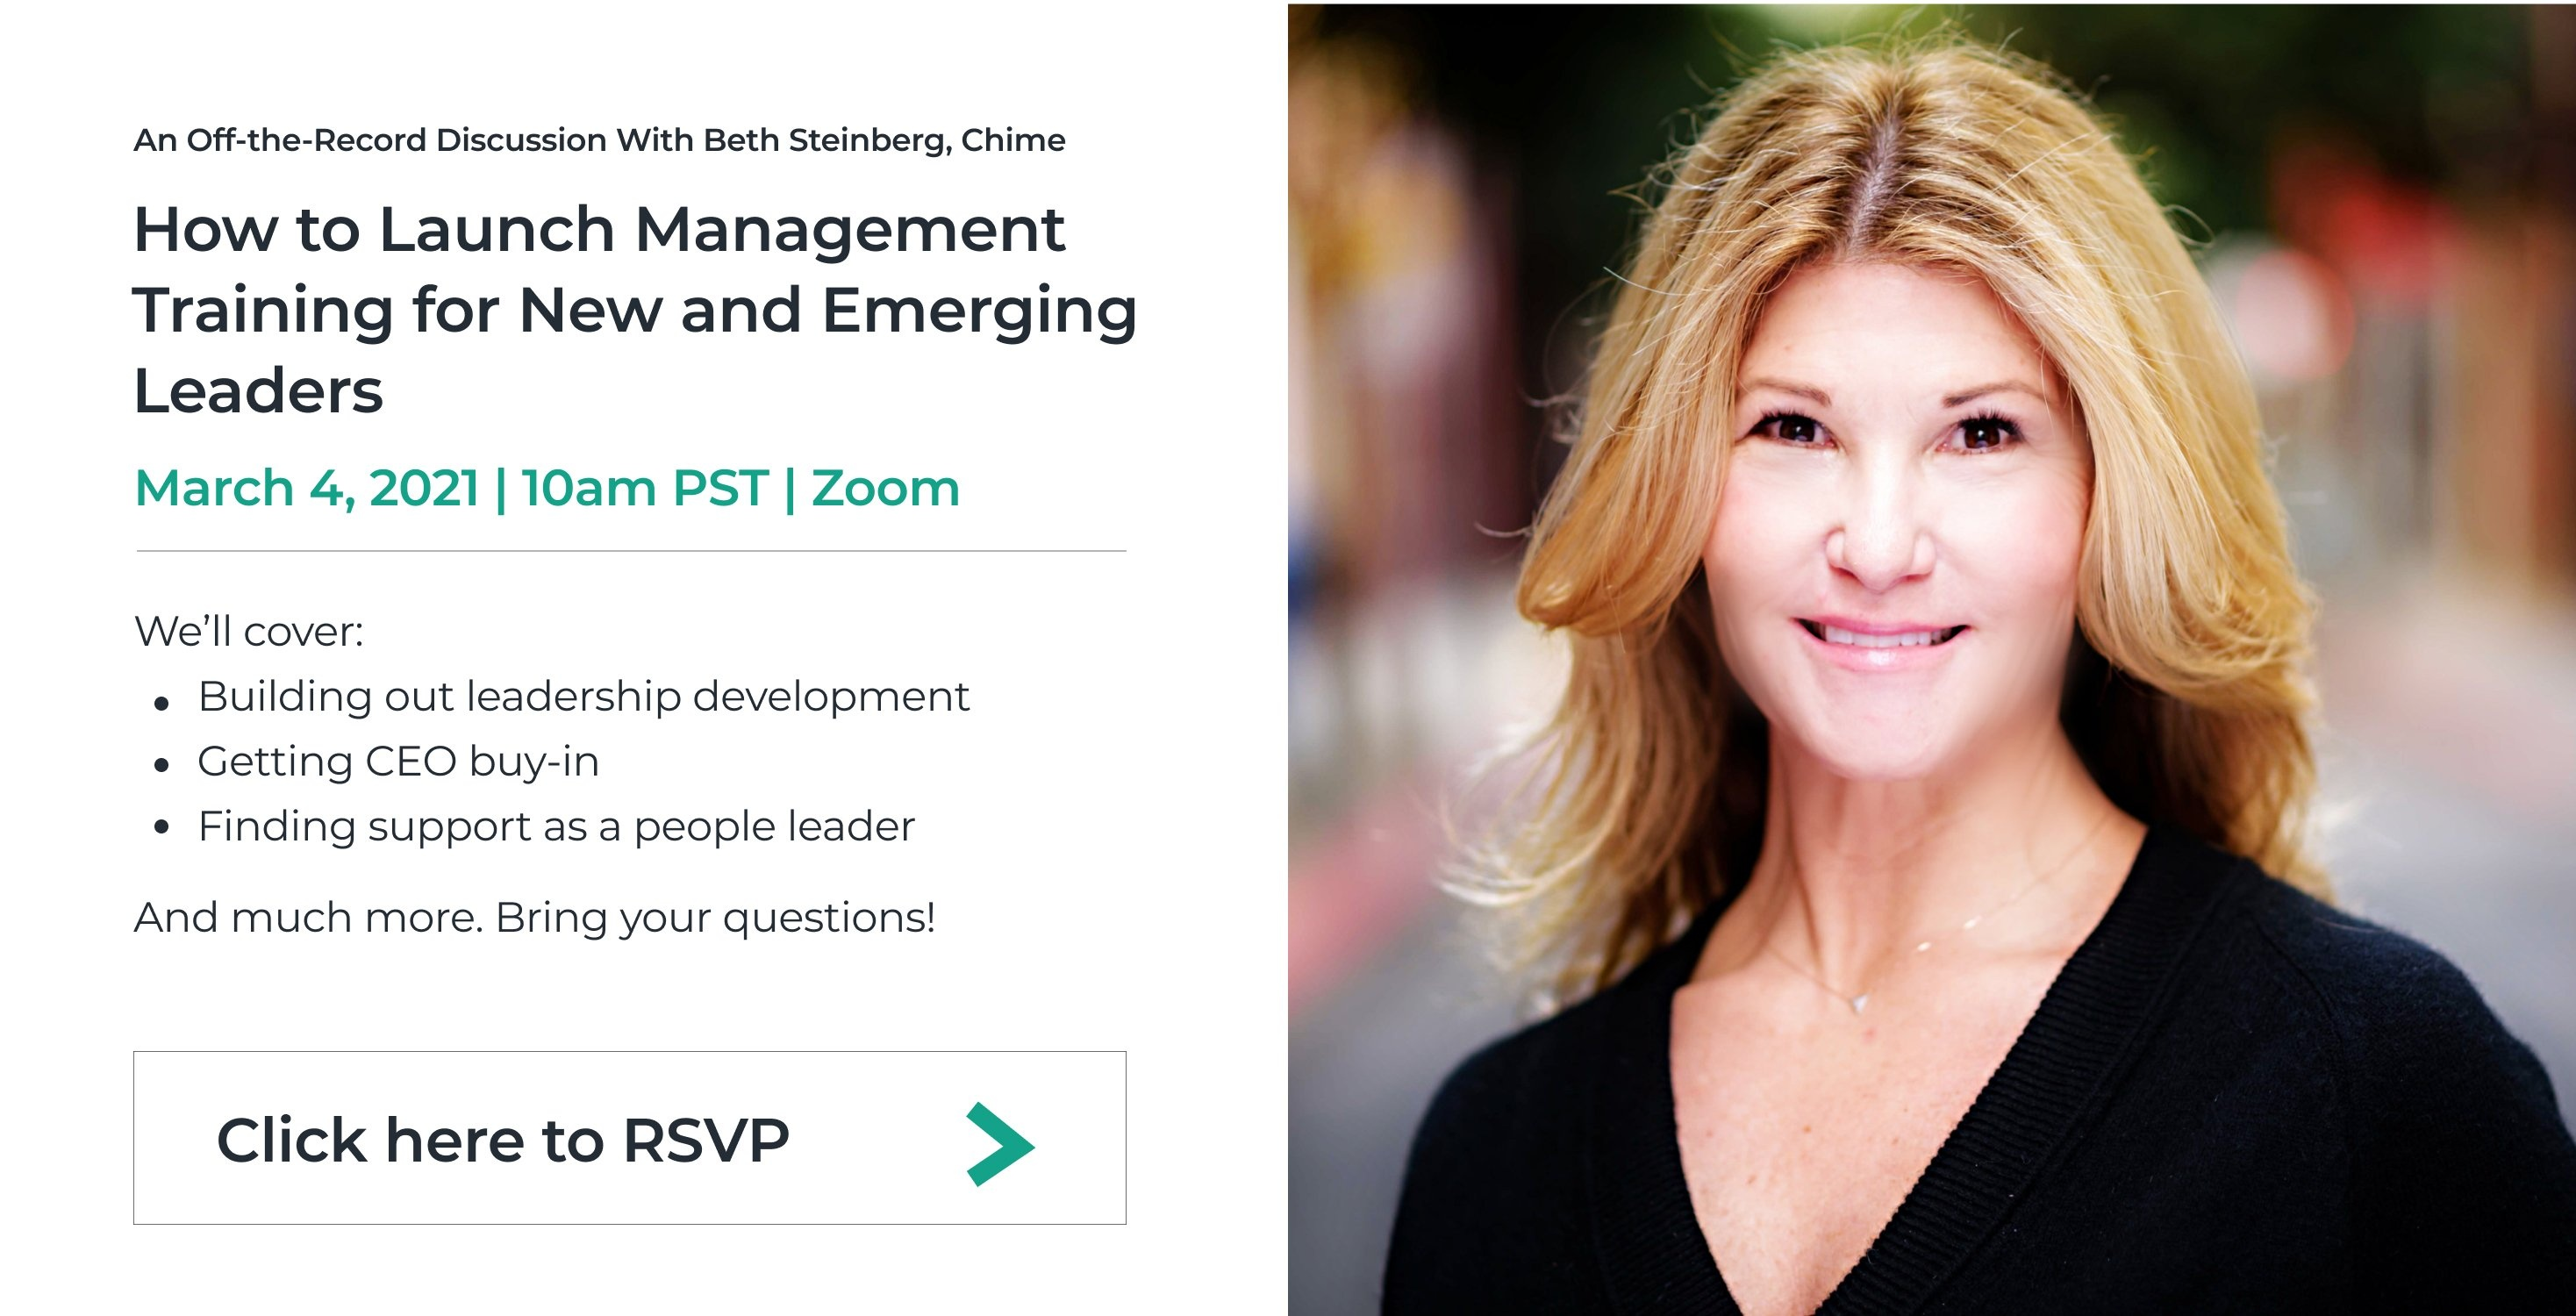 Beth Steinberg, How to Launch Management Training for New and Emerging Leaders, Startup to Scaleup, Click here to RSVP